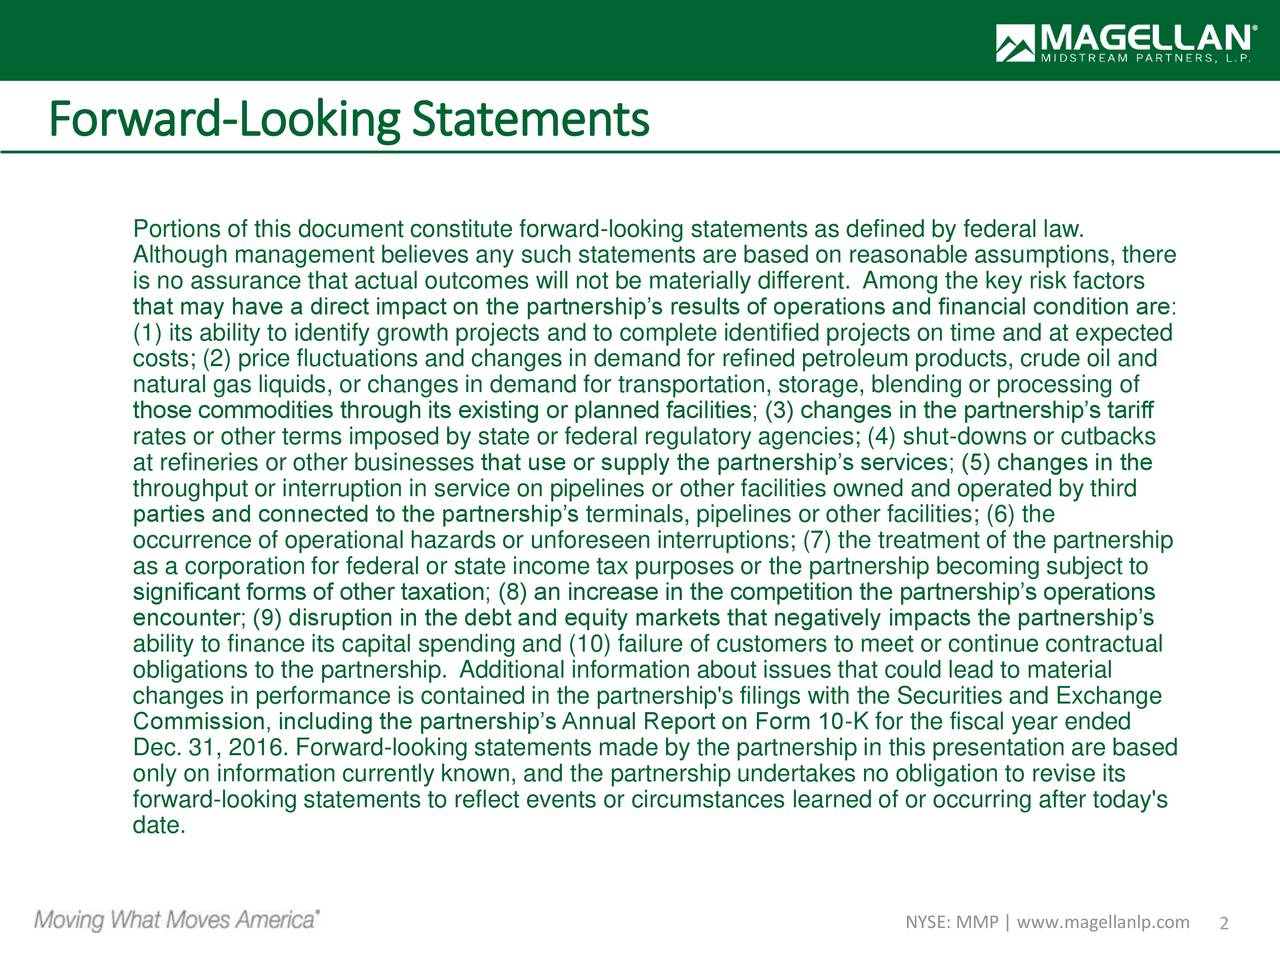 Portions of this document constitute forward-looking statements as defined by federal law. Although management believes any such statements are based on reasonable assumptions, there is no assurance that actual outcomes will not be materially different. Among the key risk factors that may have a direct impact on the partnerships results of operations and financial condition are: (1) its ability to identify growth projects and to complete identified projects on time and at expected costs; (2) price fluctuations and changes in demand for refined petroleum products, crude oil and natural gas liquids, or changes in demand for transportation, storage, blending or processing of those commodities through its existing or planned facilities; (3) changes in the partnerships tariff rates or other terms imposed by state or federal regulatory agencies; (4) shut-downs or cutbacks at refineries or other businesses that use or supply the partnerships services; (5) changes in the throughput or interruption in service on pipelines or other facilities owned and operated by third parties and connected to the partnerships terminals, pipelines or other facilities; (6) the occurrence of operational hazards or unforeseen interruptions; (7) the treatment of the partnership as a corporation for federal or state income tax purposes or the partnership becoming subject to significant forms of other taxation; (8) an increase in the competition the partnerships operations encounter; (9) disruption in the debt and equity markets that negatively impacts the partnerships ability to finance its capital spending and (10) failure of customers to meet or continue contractual obligations to the partnership. Additional information about issues that could lead to material changes in performance is contained in the partnership's filings with the Securities and Exchange Commission, including the partnerships Annual Report on Form 10-K for the fiscal year ended Dec. 31, 2016. Forward-looking statements made by the partnership in this presentation are based only on information currently known, and the partnership undertakes no obligation to revise its forward-looking statements to reflect events or circumstances learned of or occurring after today's date. NYSE: MMP | www.magellanlp.com2